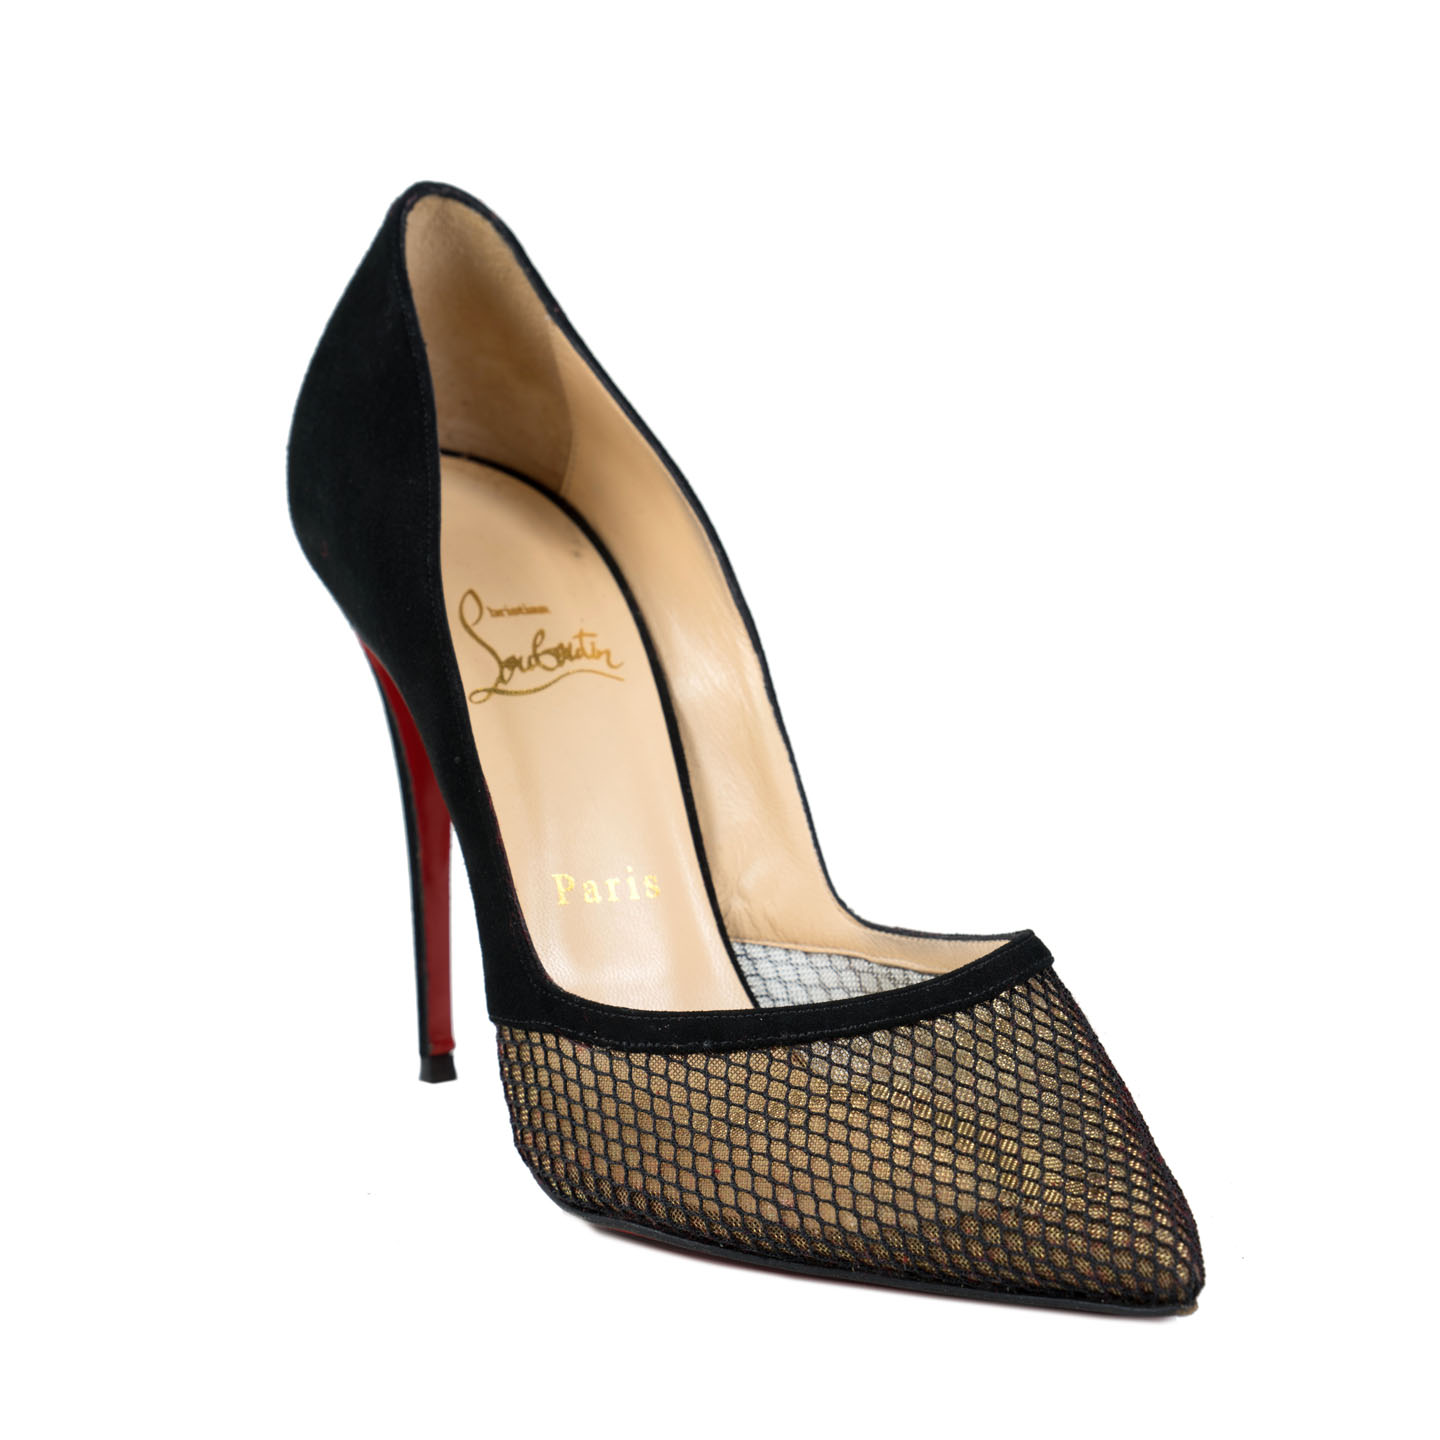 competitive price 63038 e03b8 Christian Louboutin Miluna Black Pumps Size 38.5 - LabelCentric